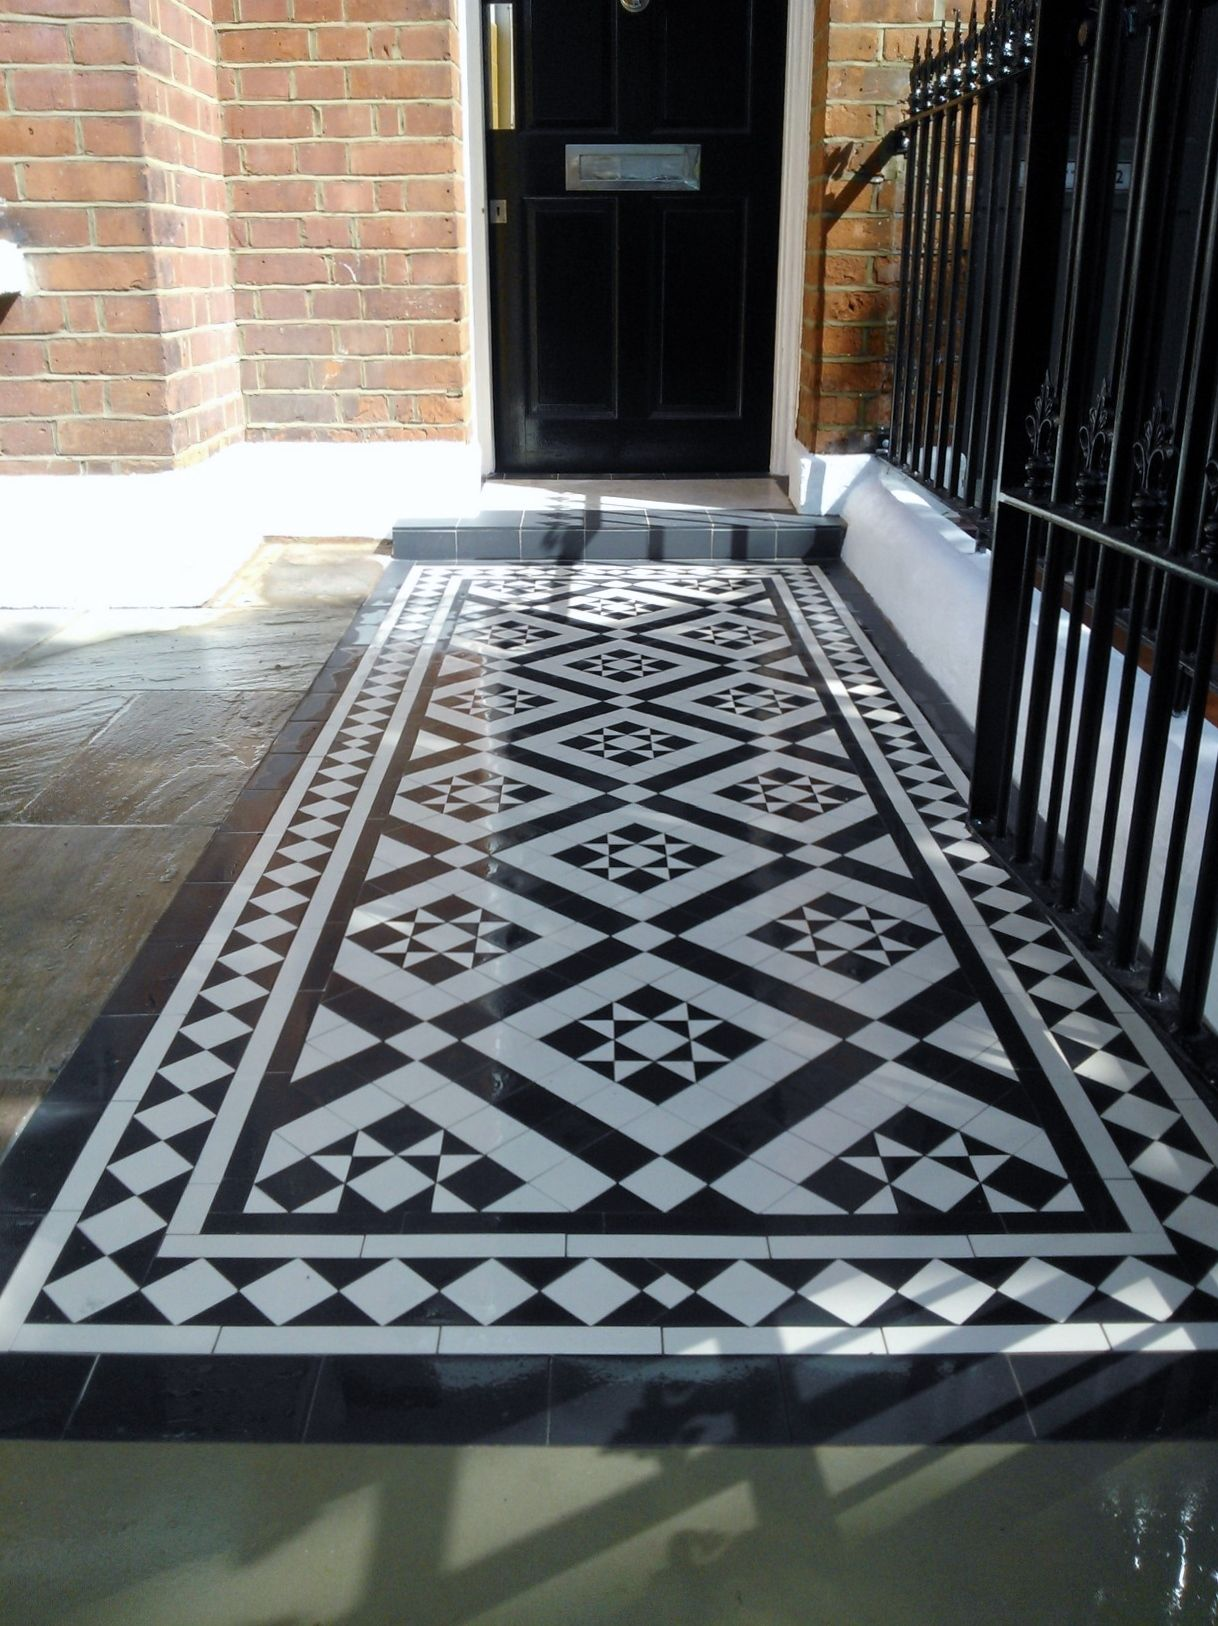 Black and white victorian mosaic tile path red brick garden wall black and white victorian mosaic tile path red brick garden wall dailygadgetfo Image collections